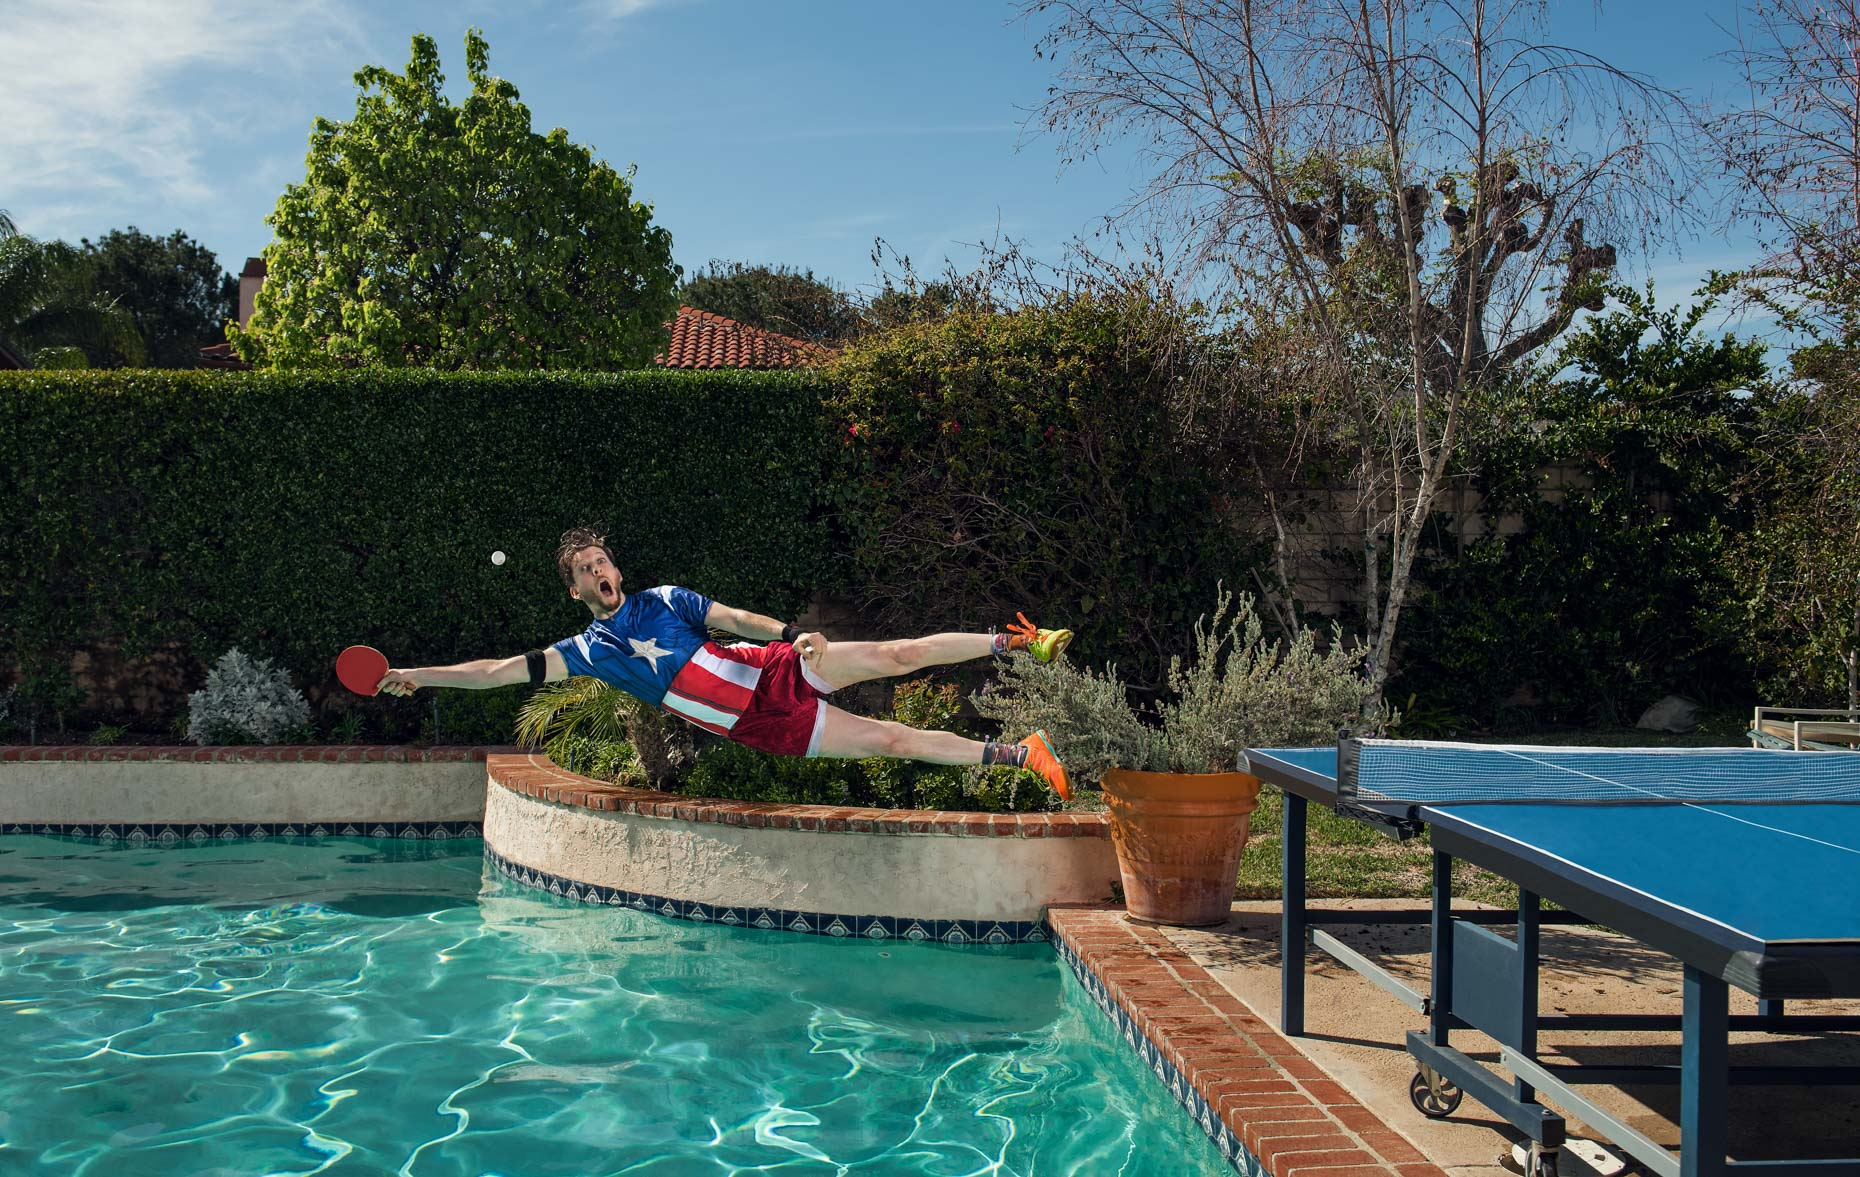 Adam-bobrow-diving-shot-ping-pong-pool